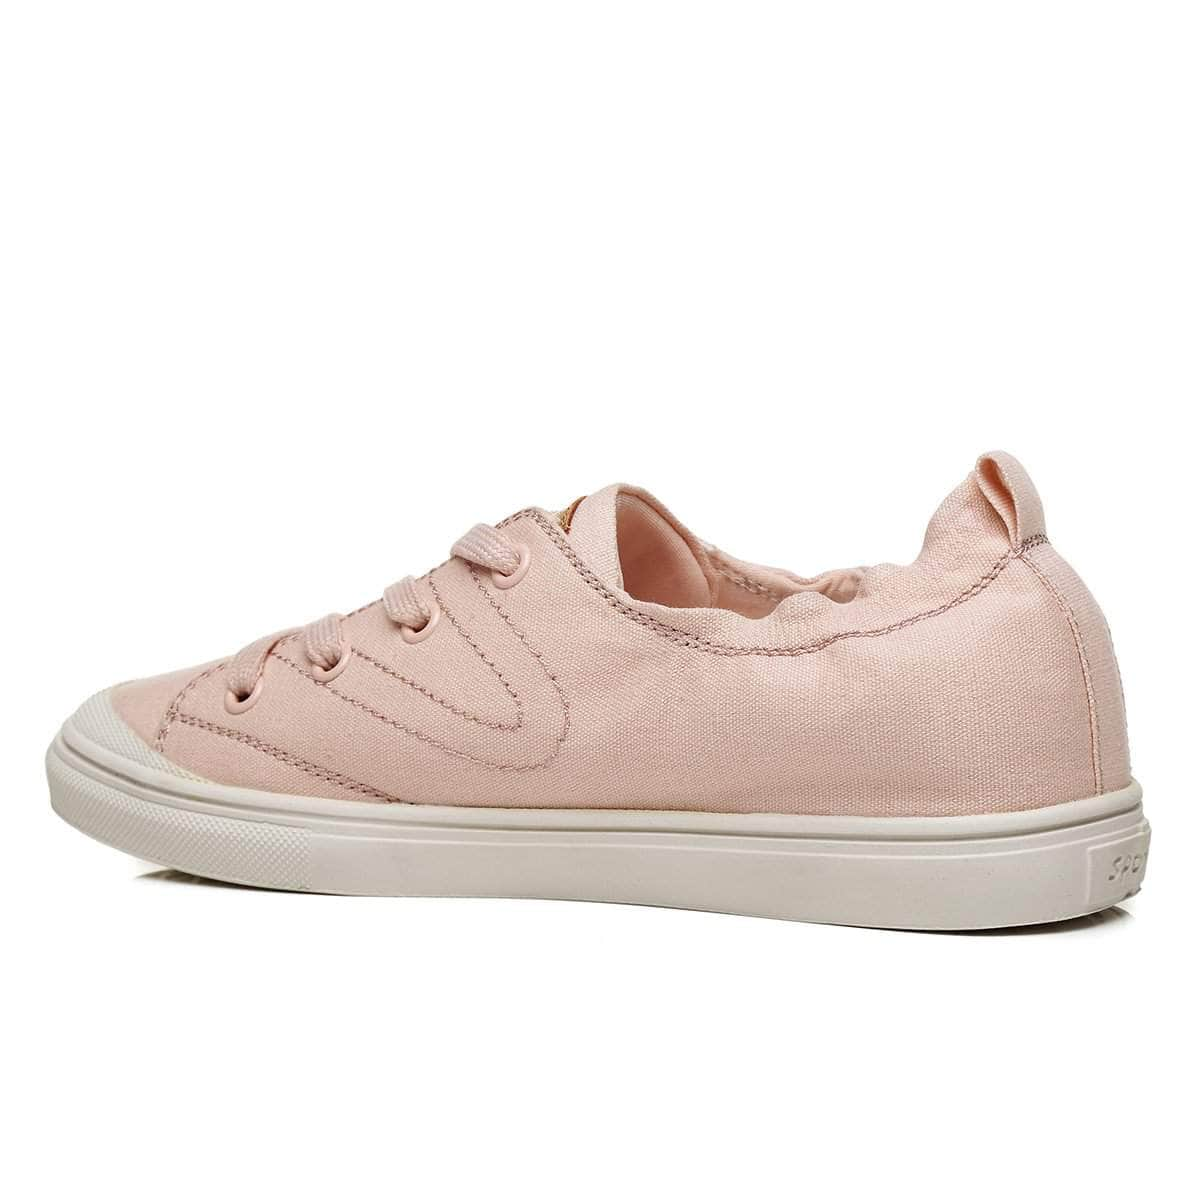 Canvas Sneakers - UGG Direct - Australia